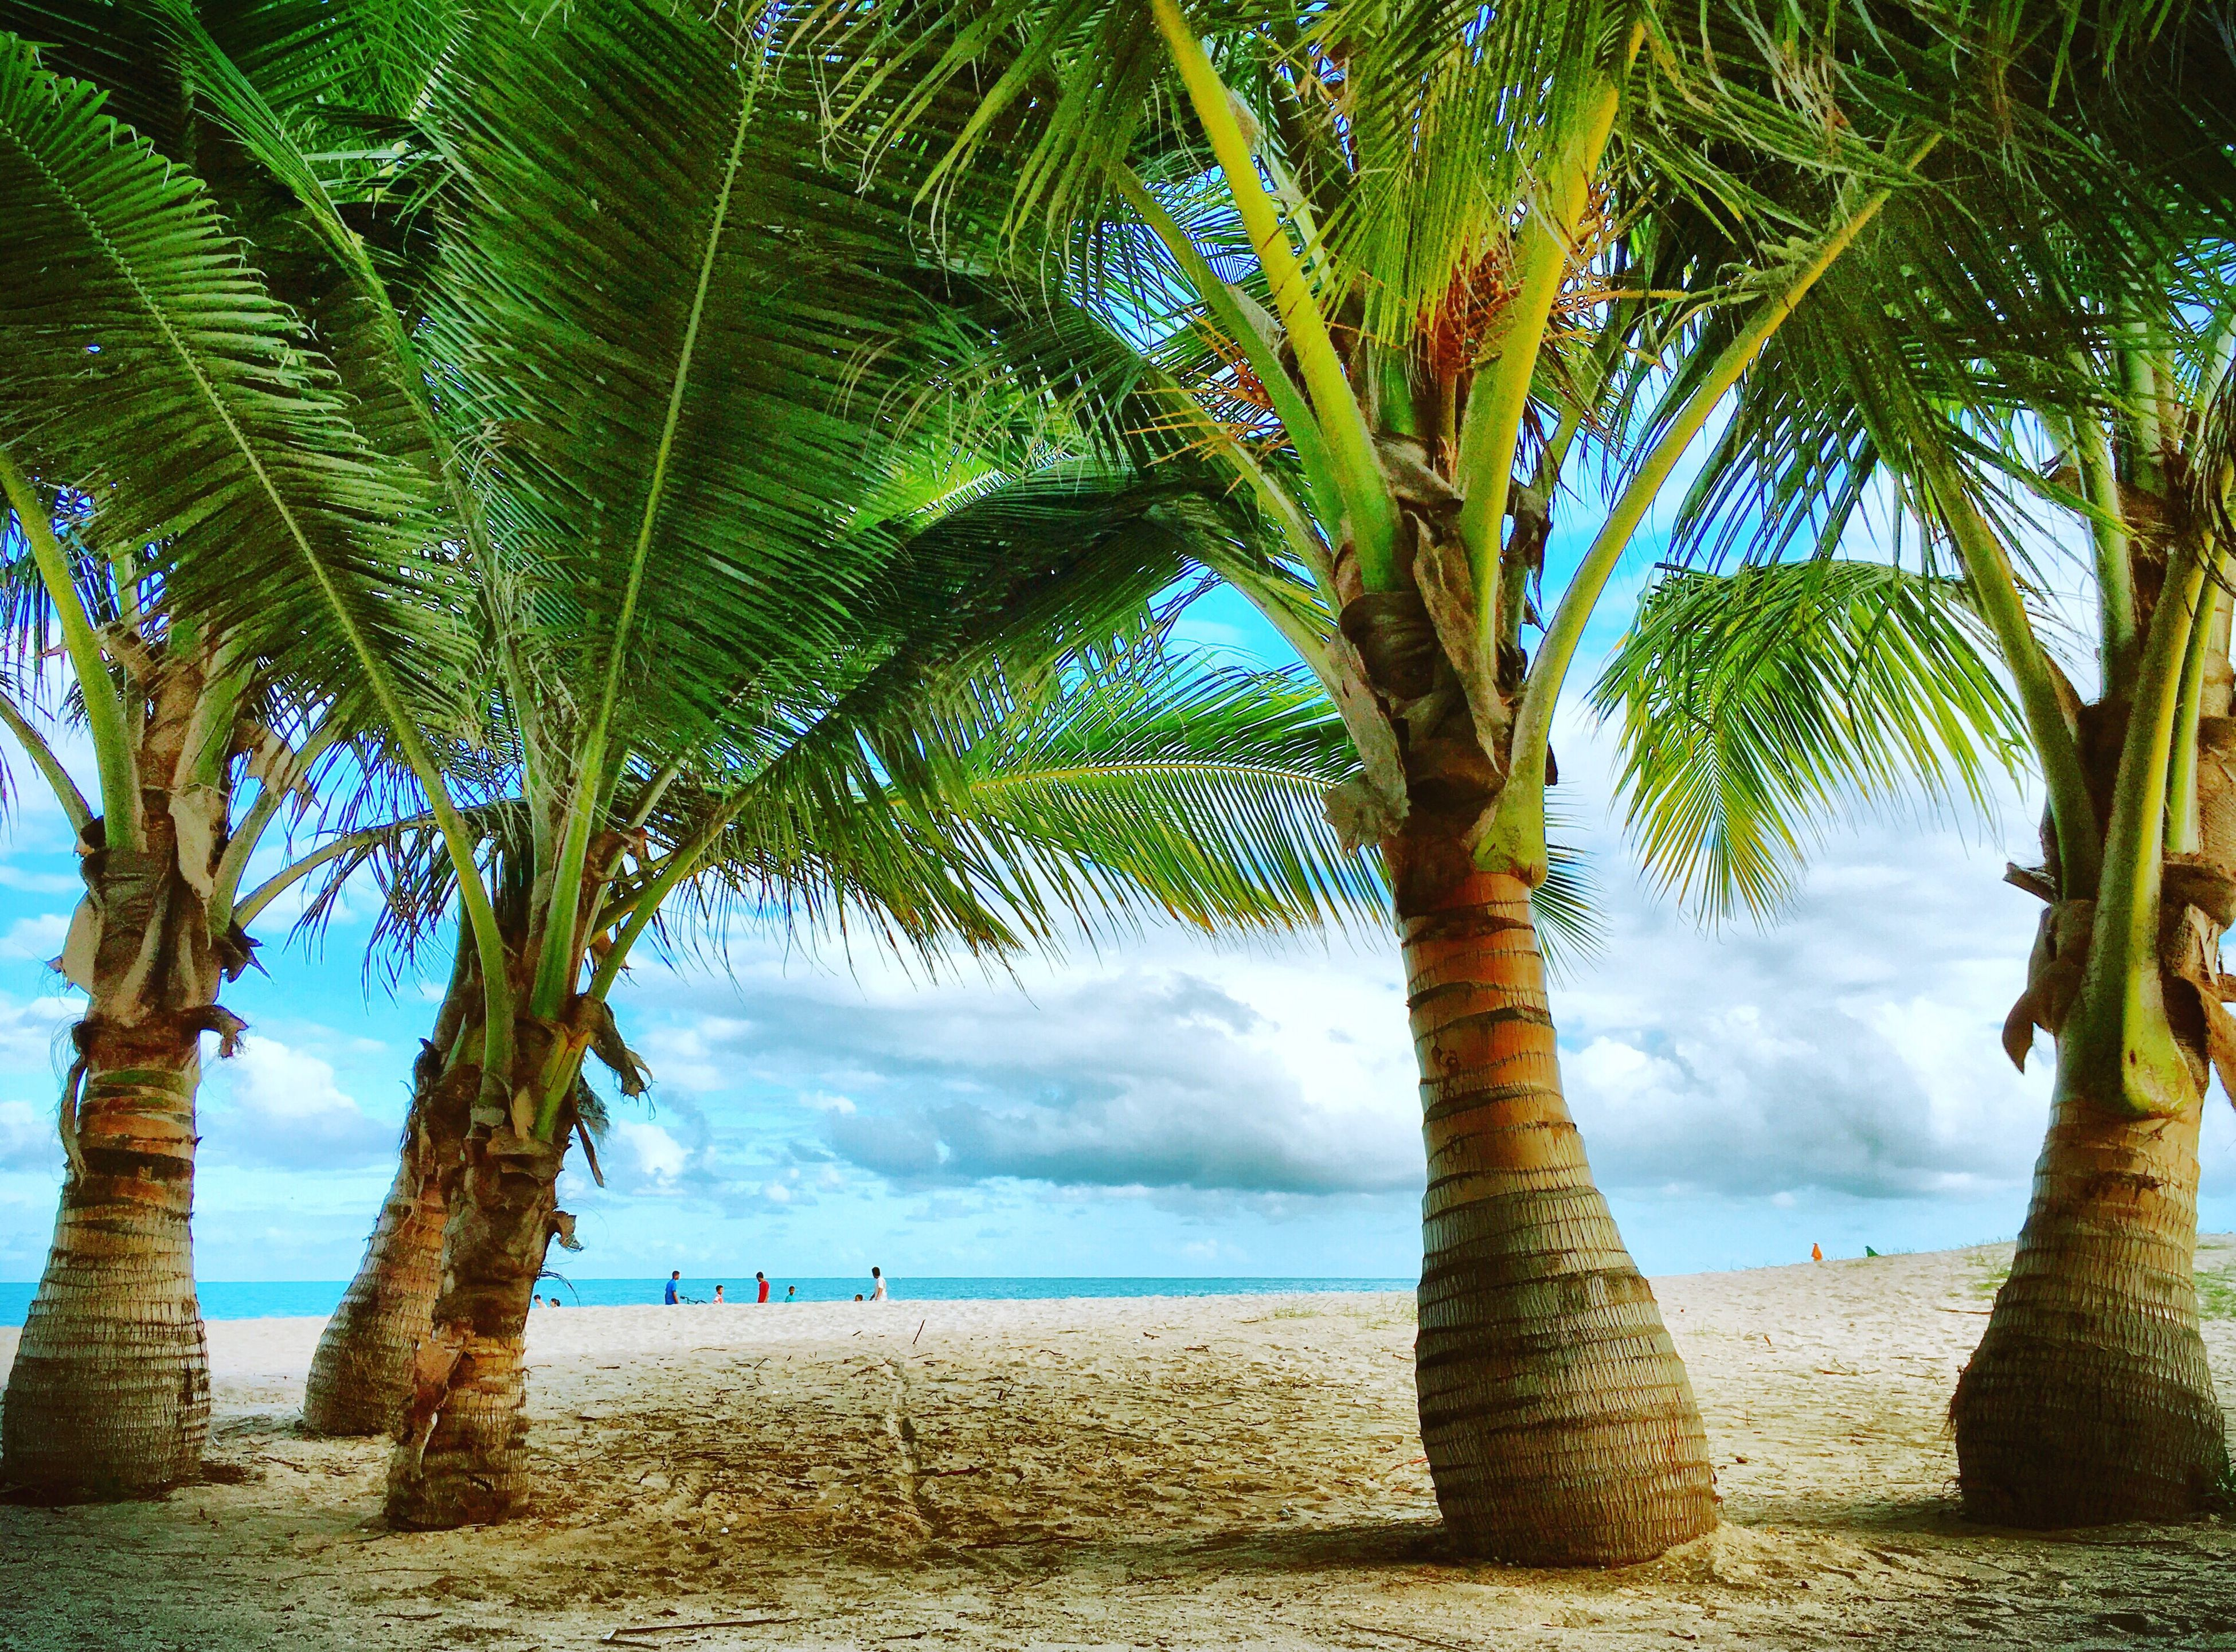 tree, palm tree, tranquility, sea, water, tranquil scene, beach, scenics, tree trunk, beauty in nature, sky, nature, horizon over water, growth, shore, idyllic, branch, sand, vacations, outdoors